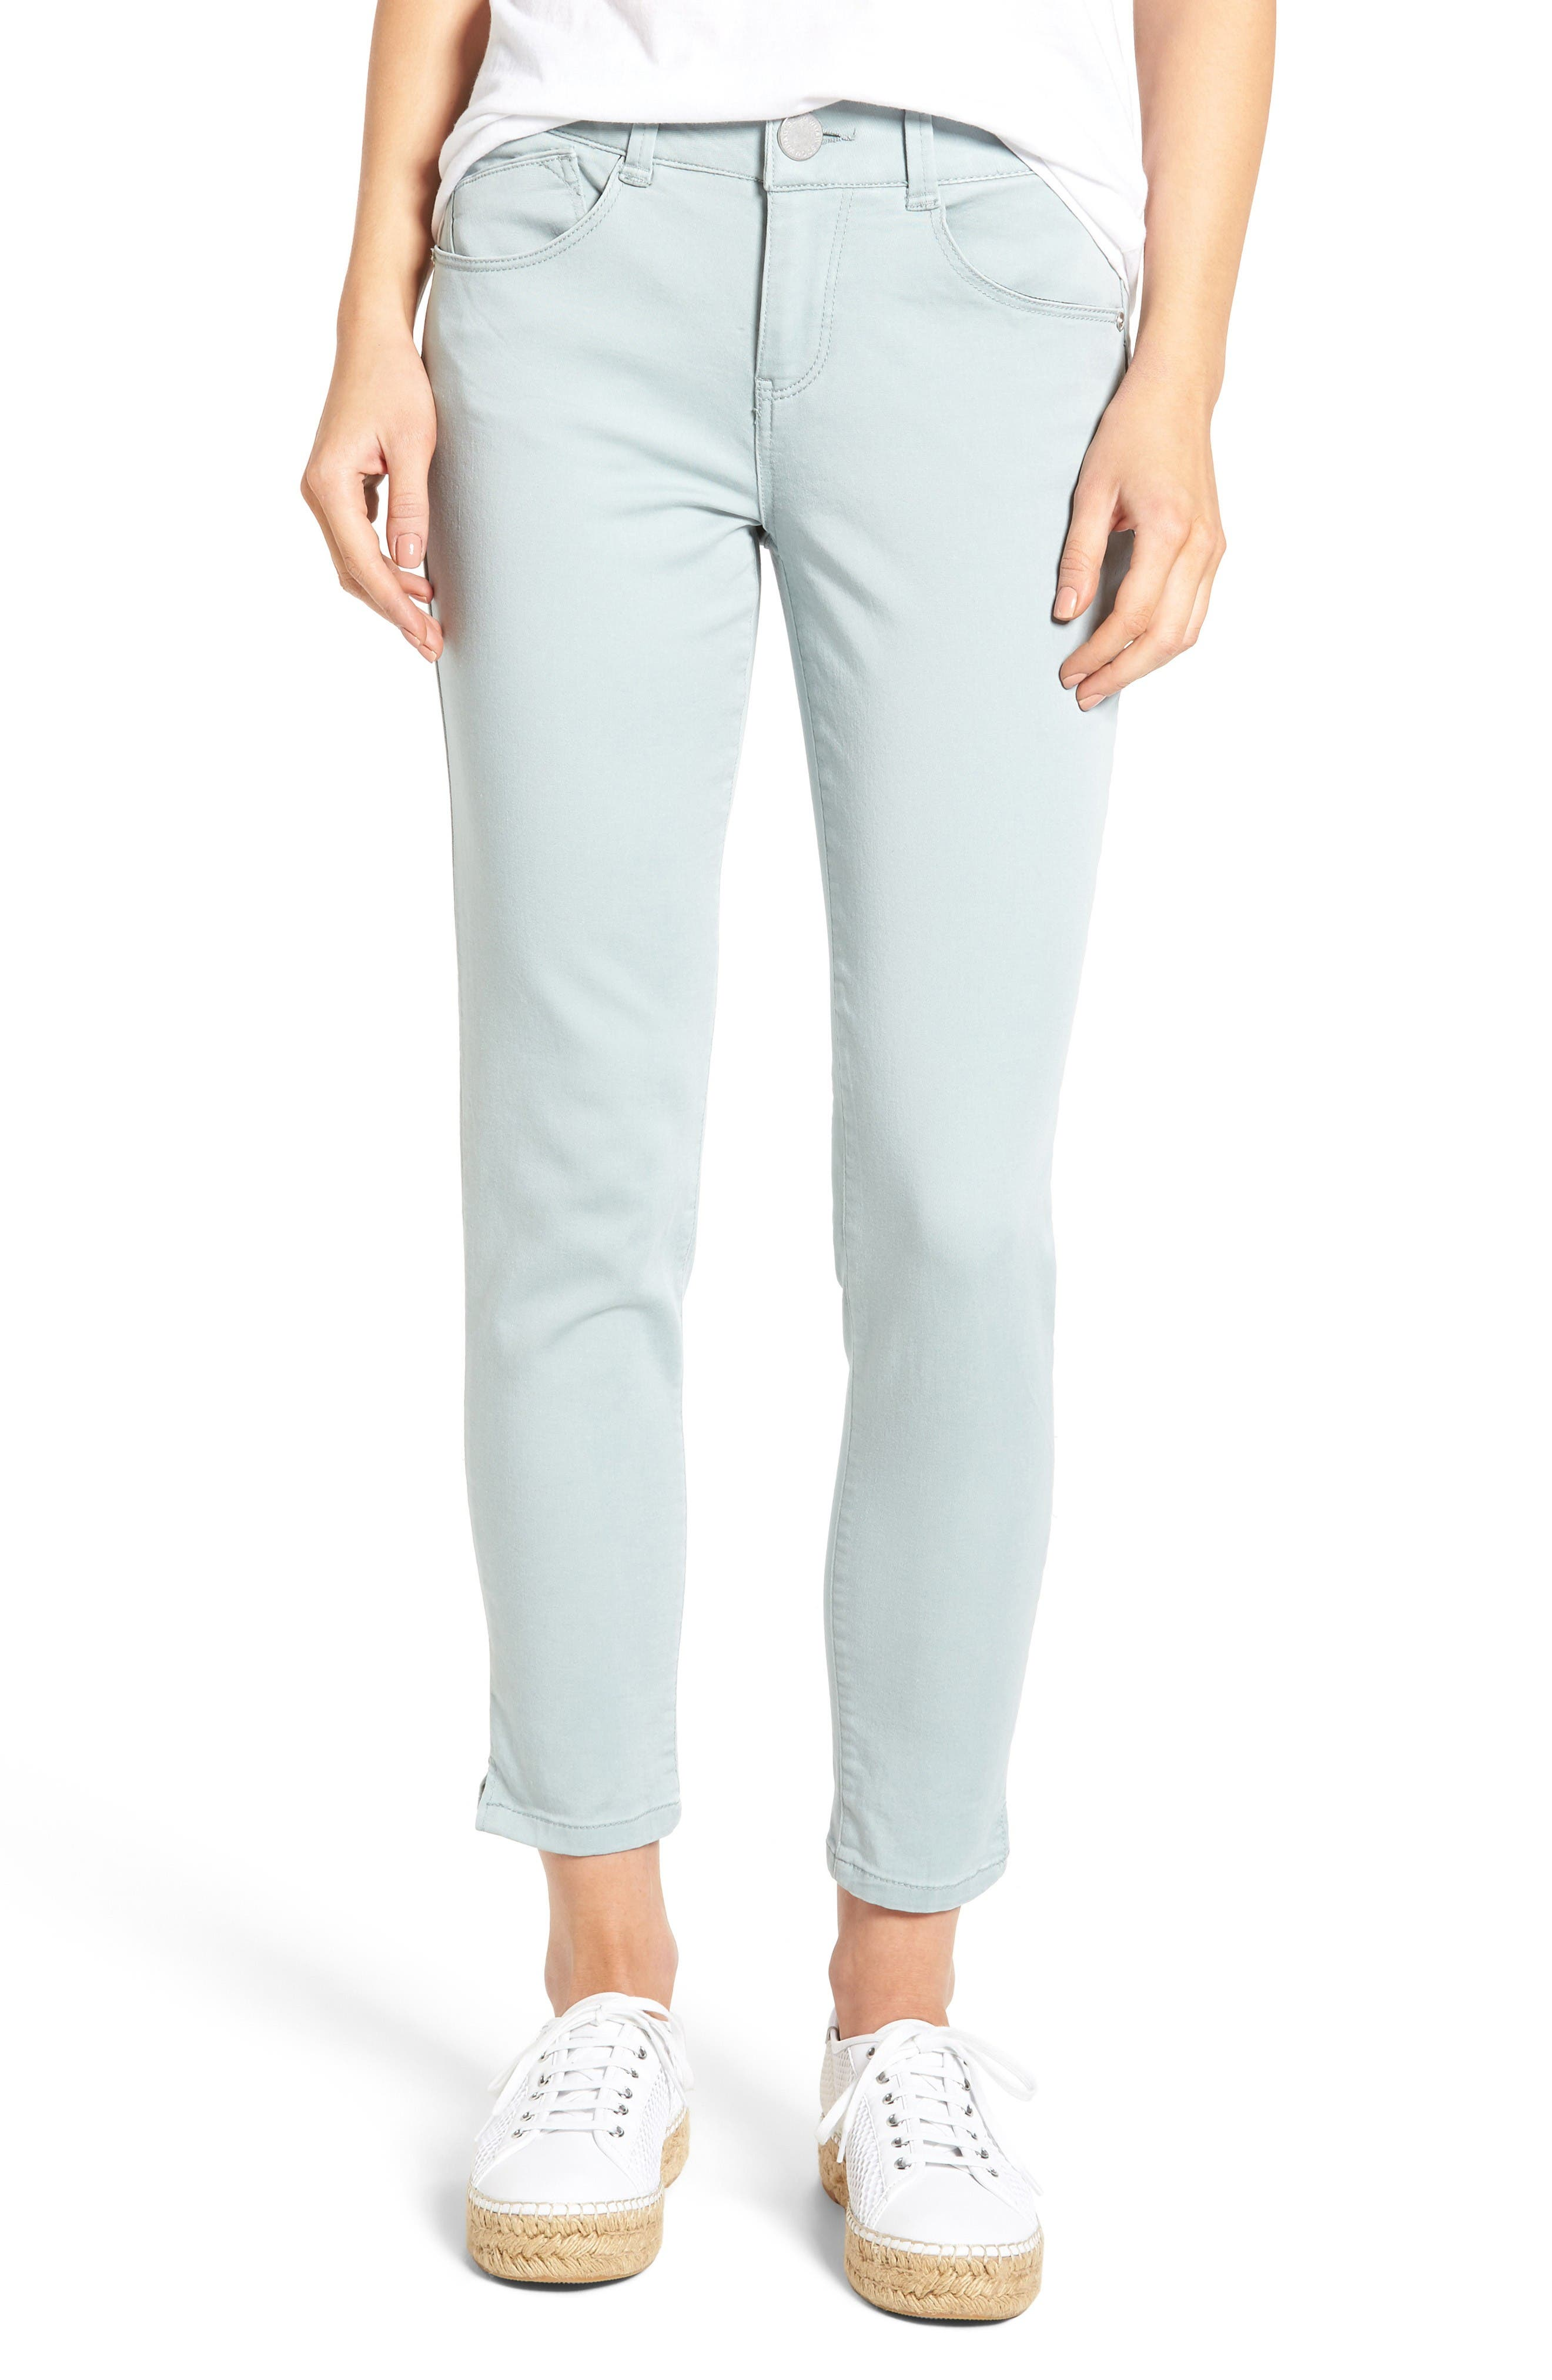 Alternate Image 1 Selected - Wit & Wisdom Ab-solution Stretch Twill Skinny Pants (Regular & Petite) (Nordstrom Exclusive)